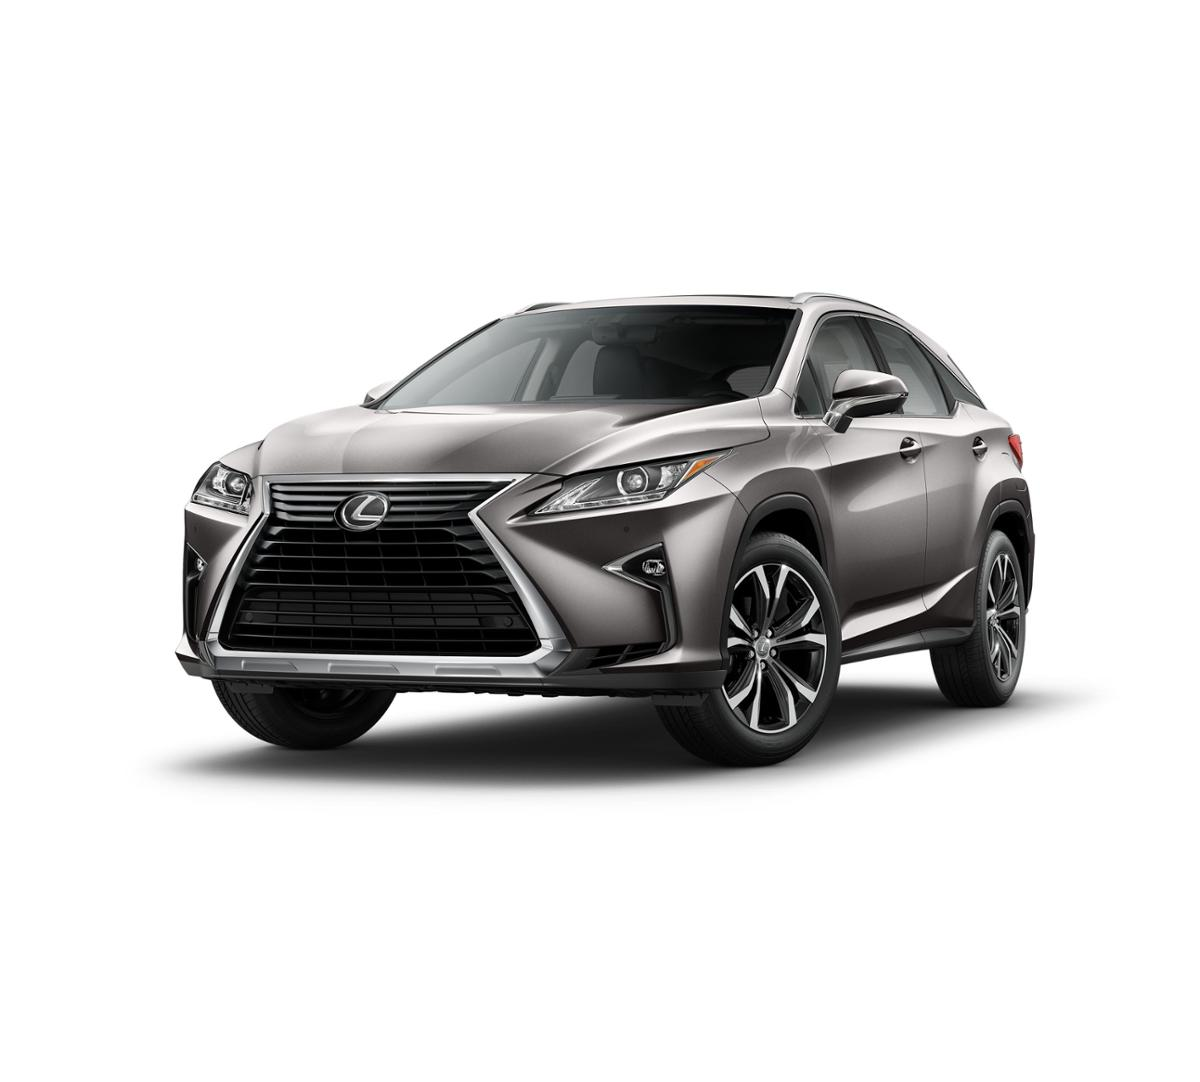 hight resolution of 2019 lexus rx 350 vehicle photo in albuquerque nm 87109